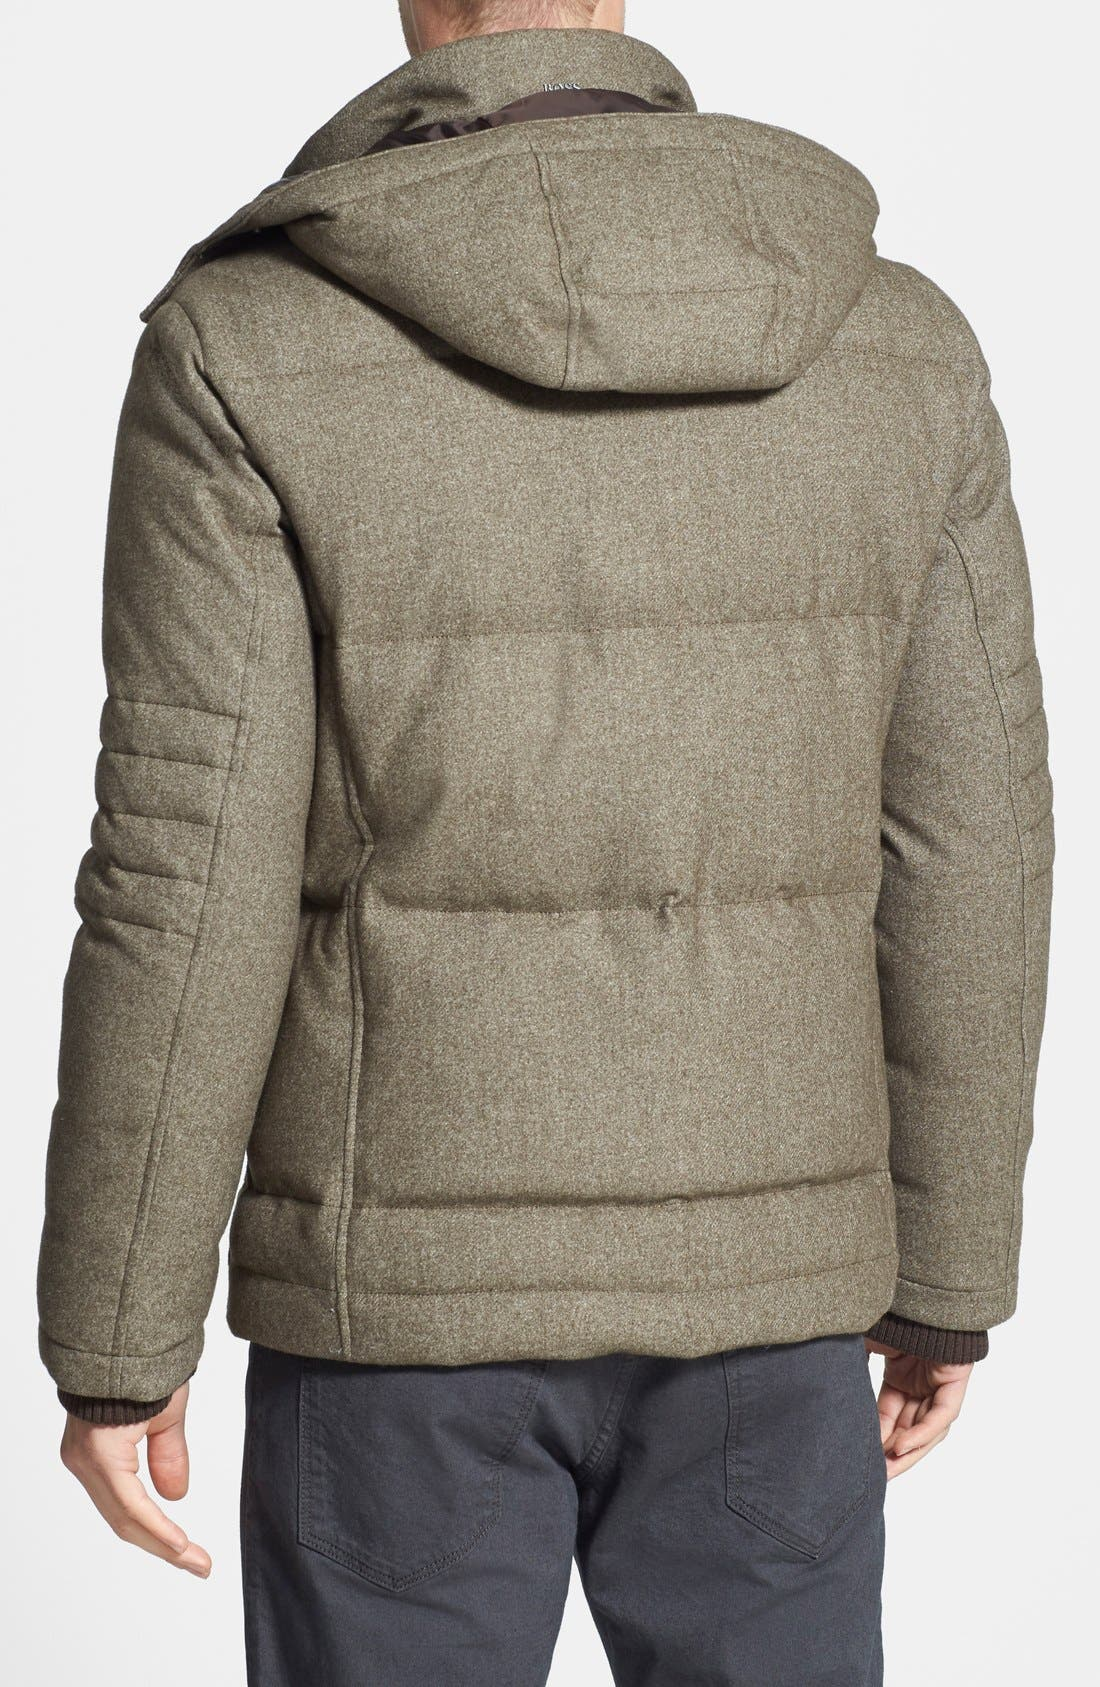 HUGO BOSS 'Dery' Quilted Down Coat,                             Alternate thumbnail 3, color,                             245